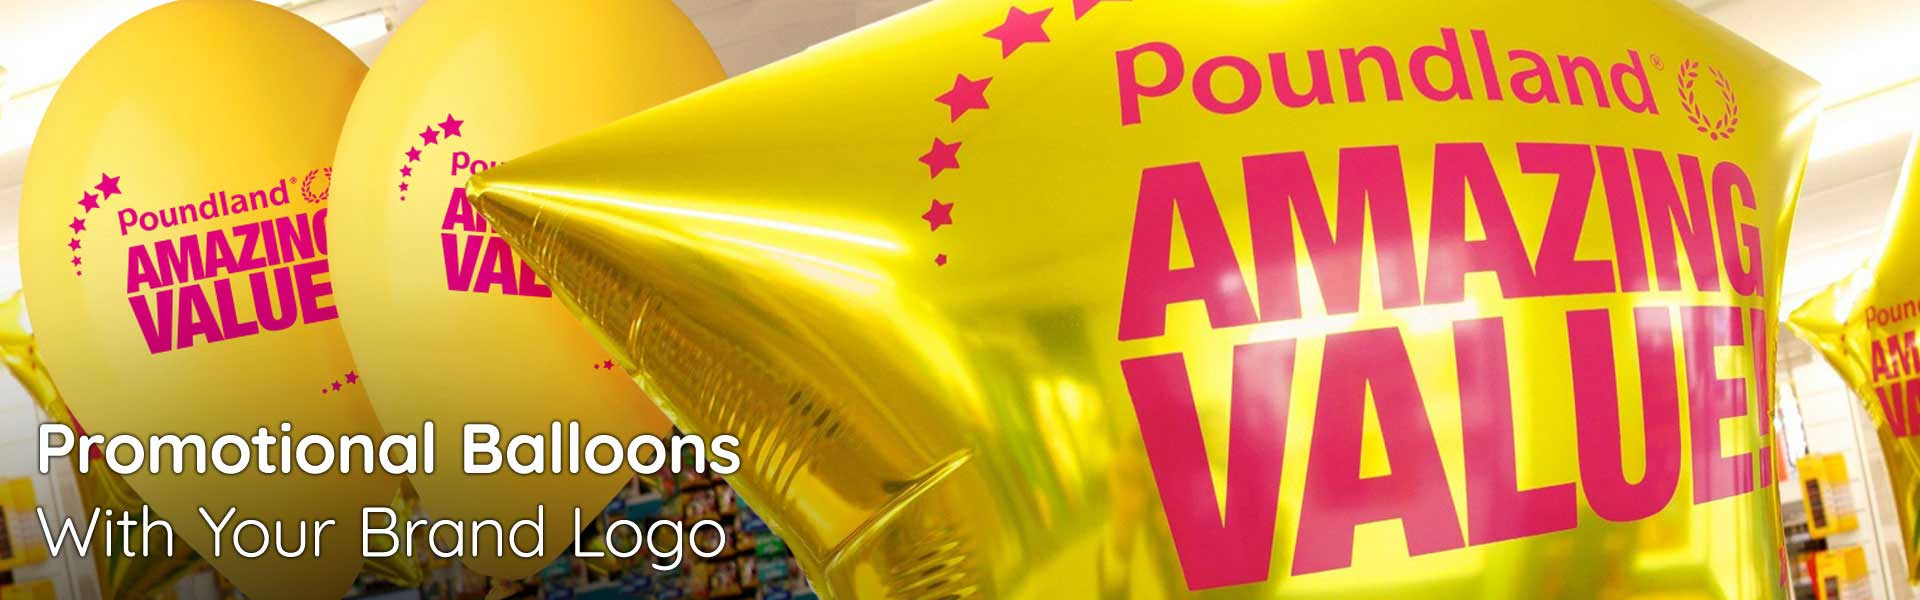 Promotional Balloons, Custom Printed for Poundland